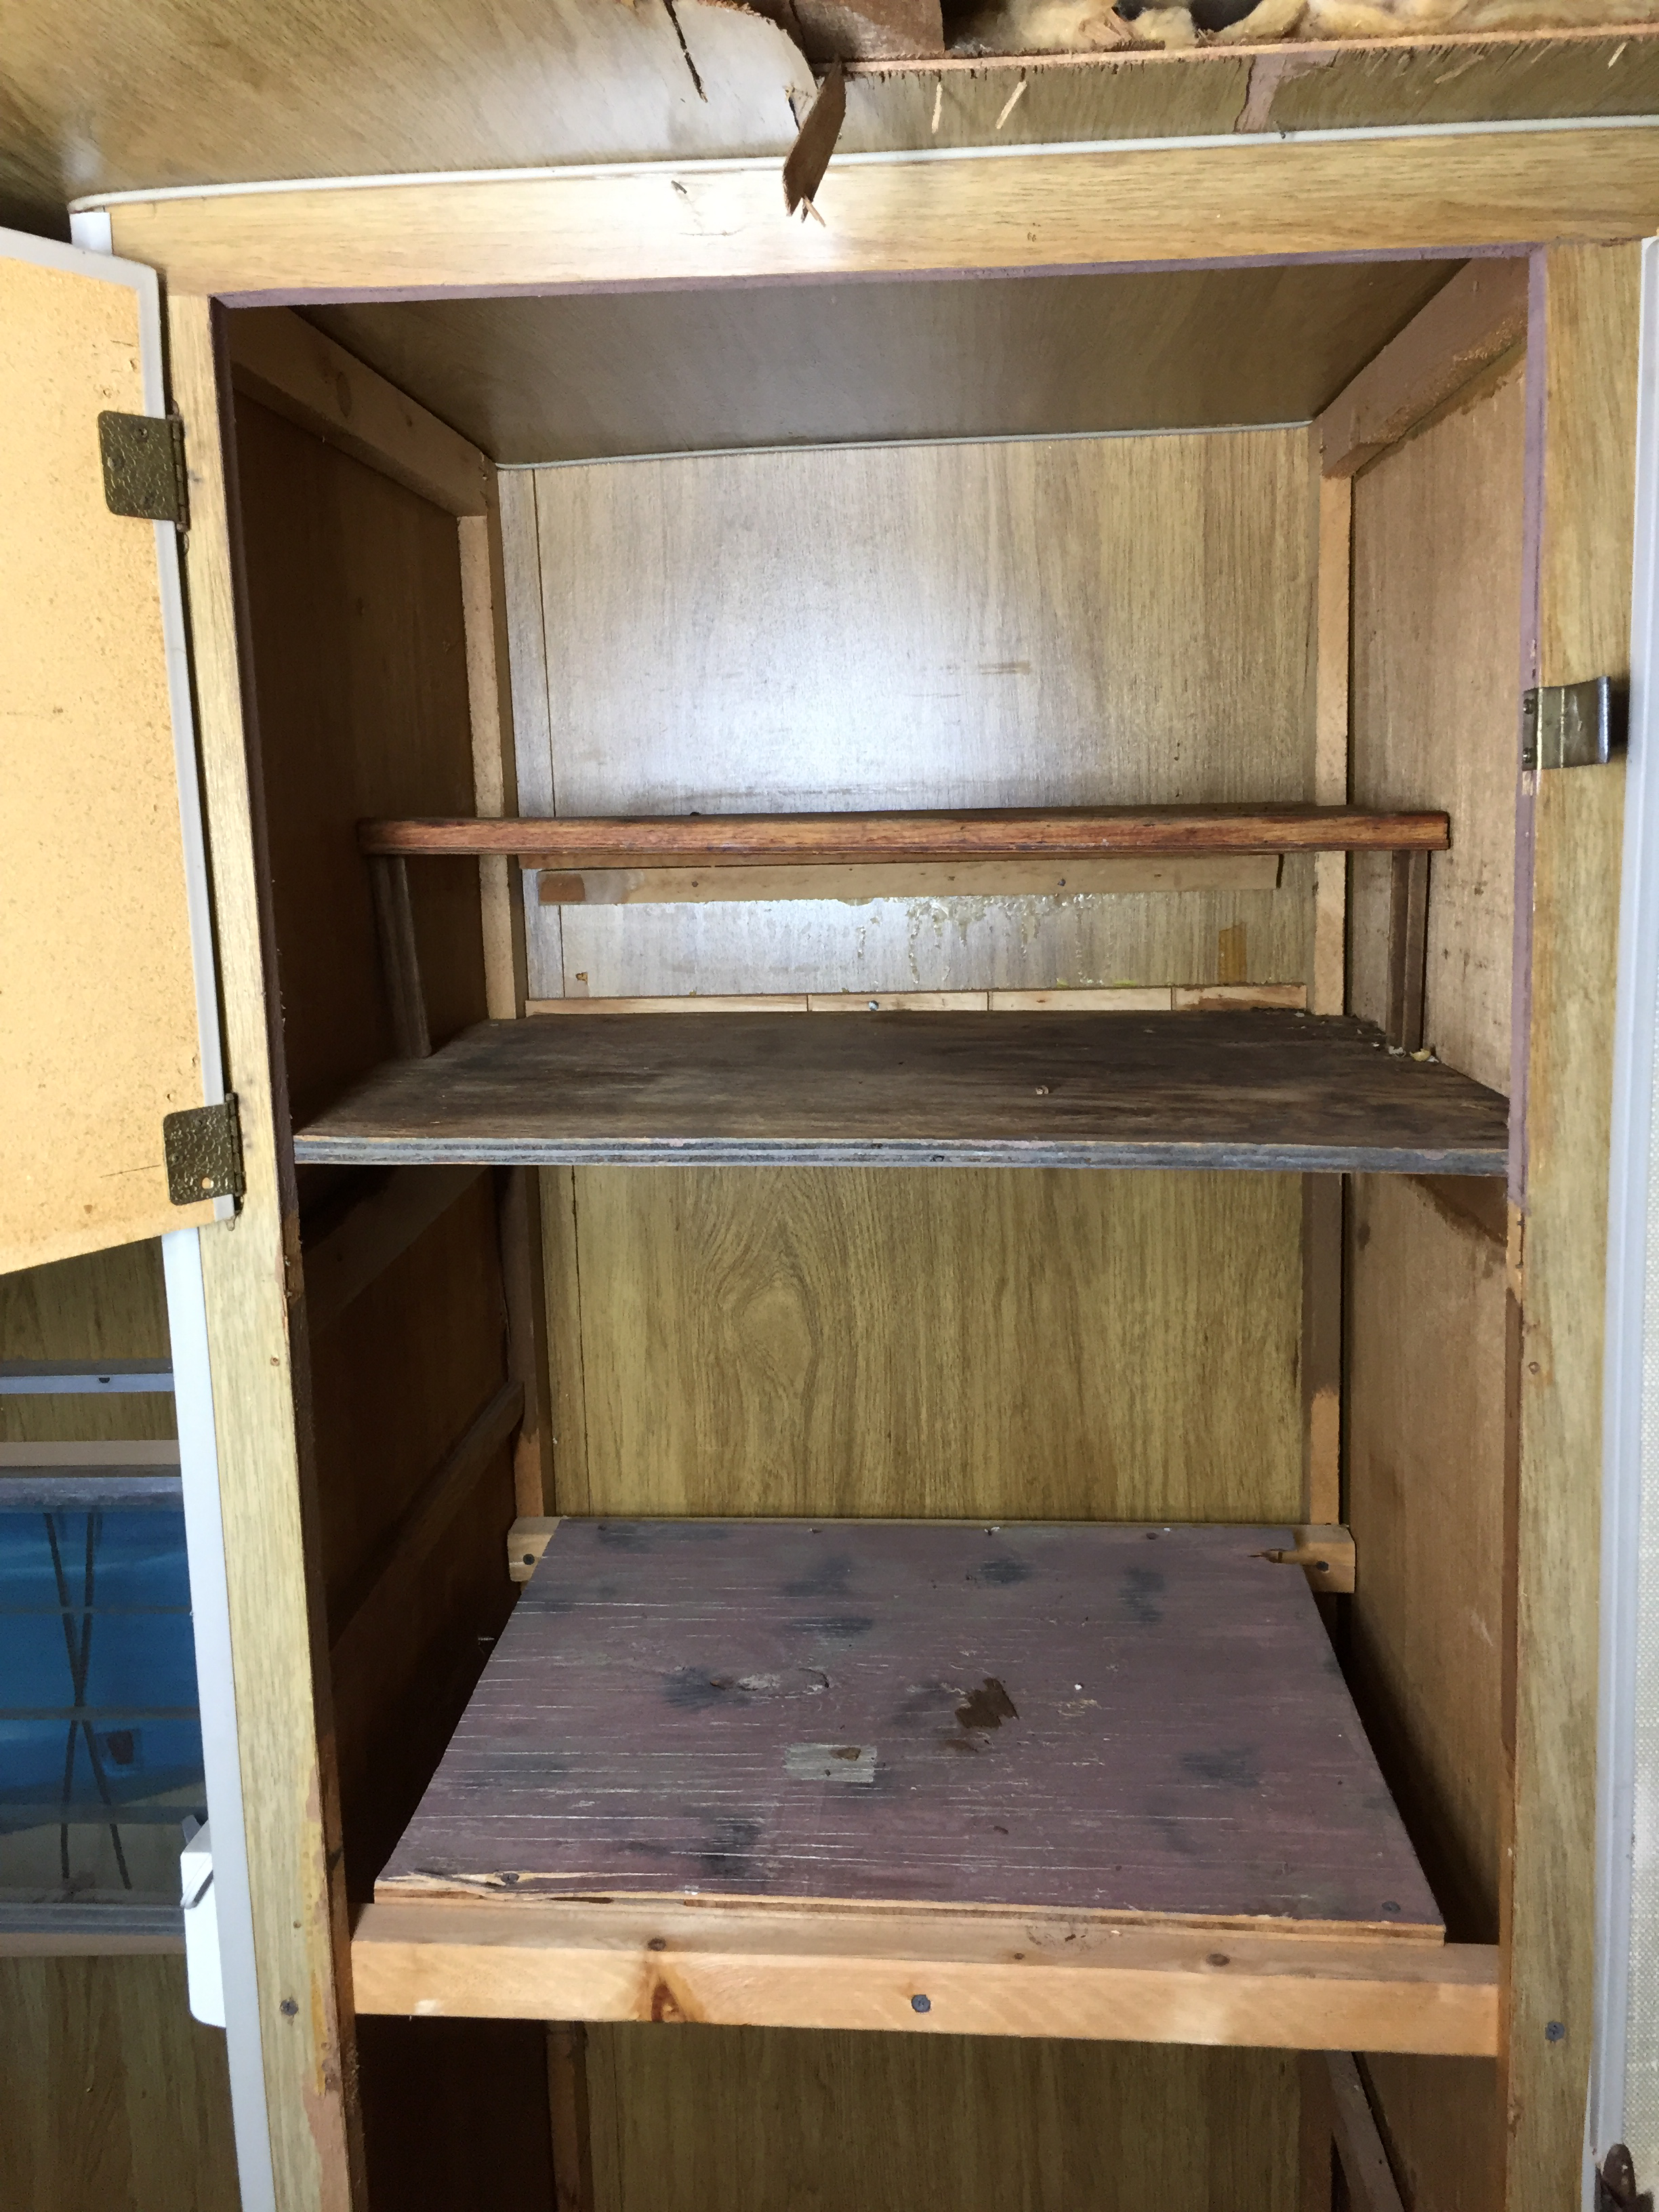 Interior detail of the top of the storage cabinet